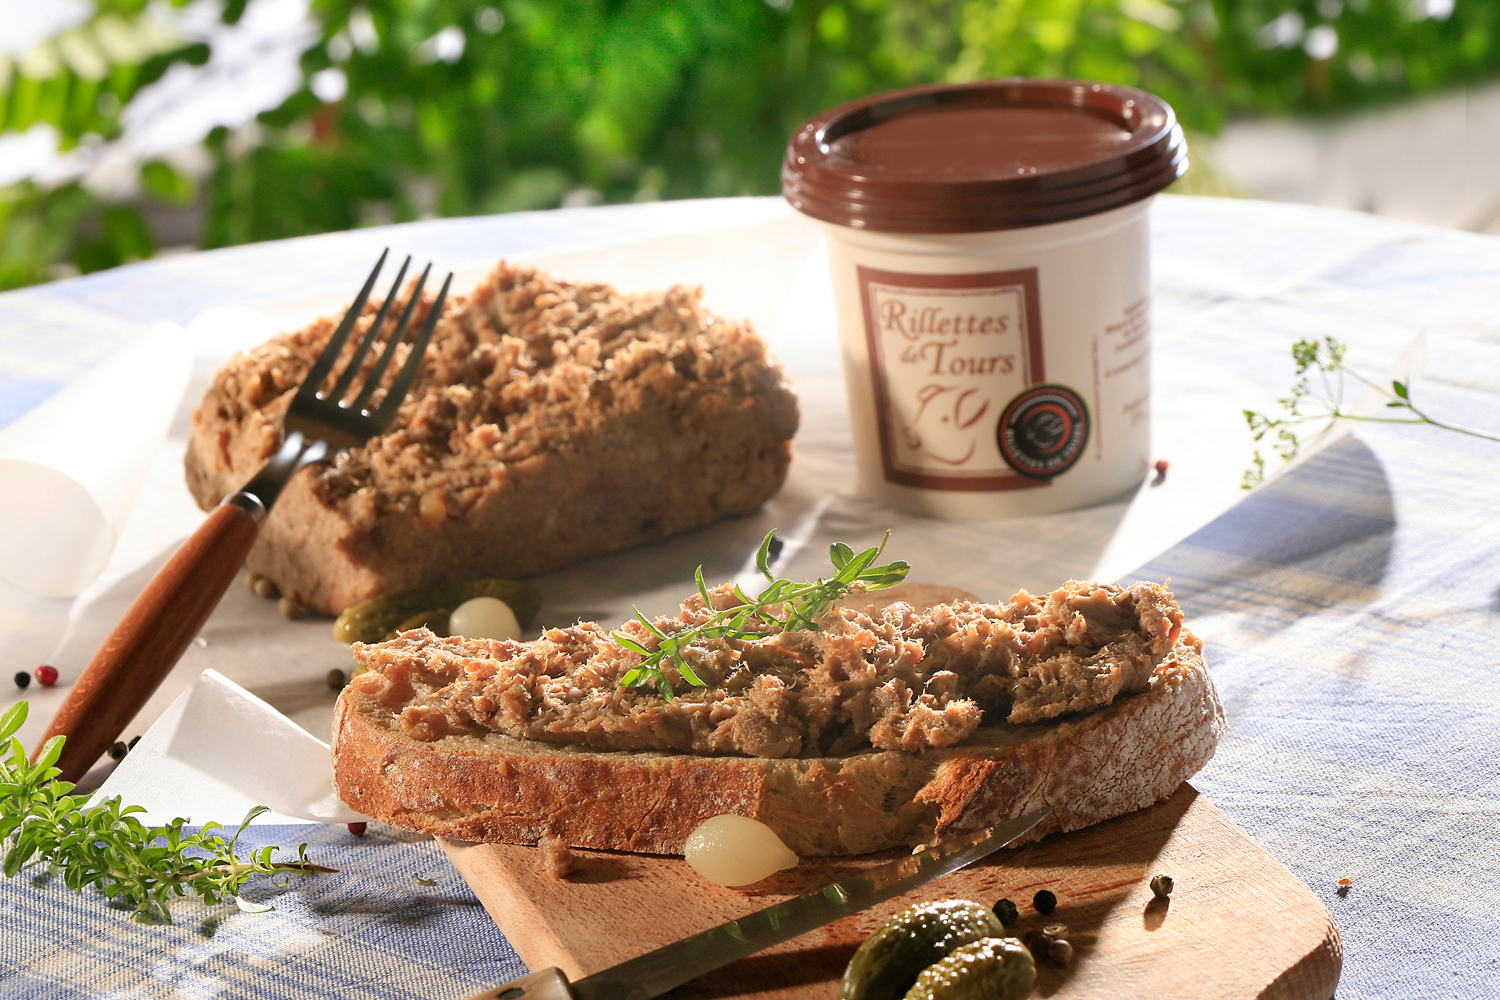 Rillettes de Tours